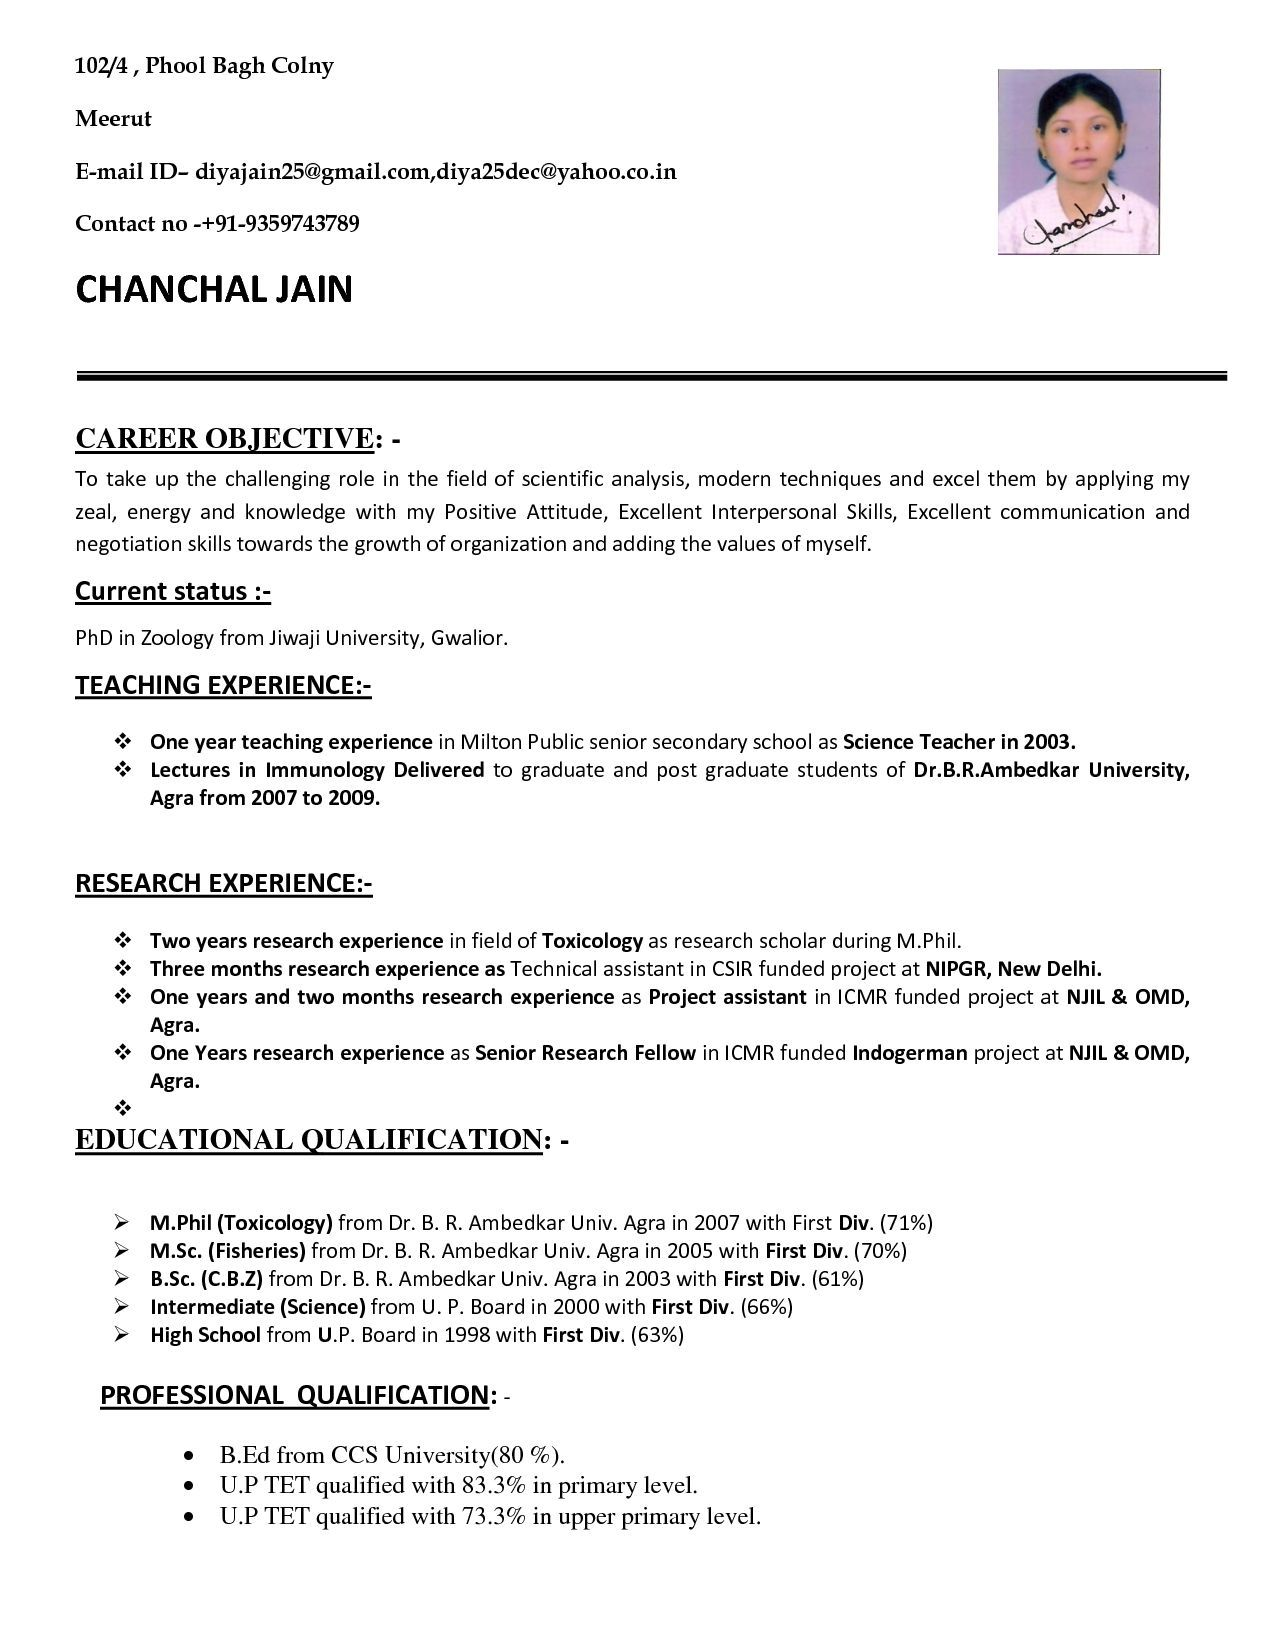 Resume Format For School Teacher Job It Cover Letter Sample Within Applying Teacher Resume Template Jobs For Teachers Teacher Resume